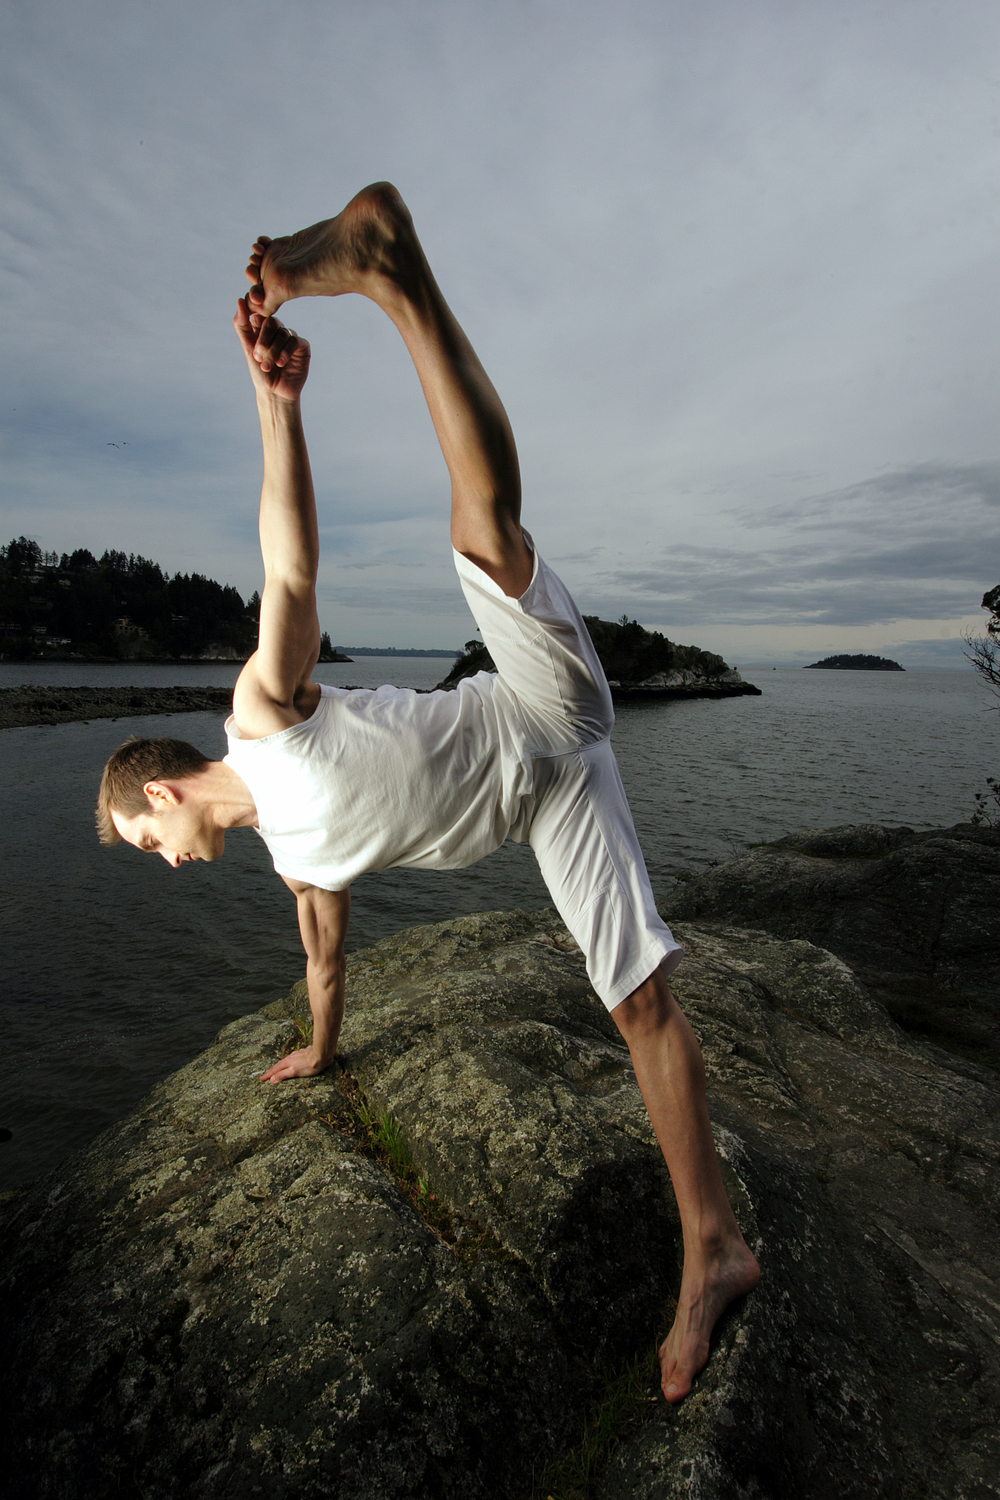 Kreg is a certified Hatha Yoga Teacher, international presenter and kinesiologist (exercise science). All of his classes integrate a purposeful, meditative quality to allow for an experience of connection and reflection while the body explores expansion and renewal.